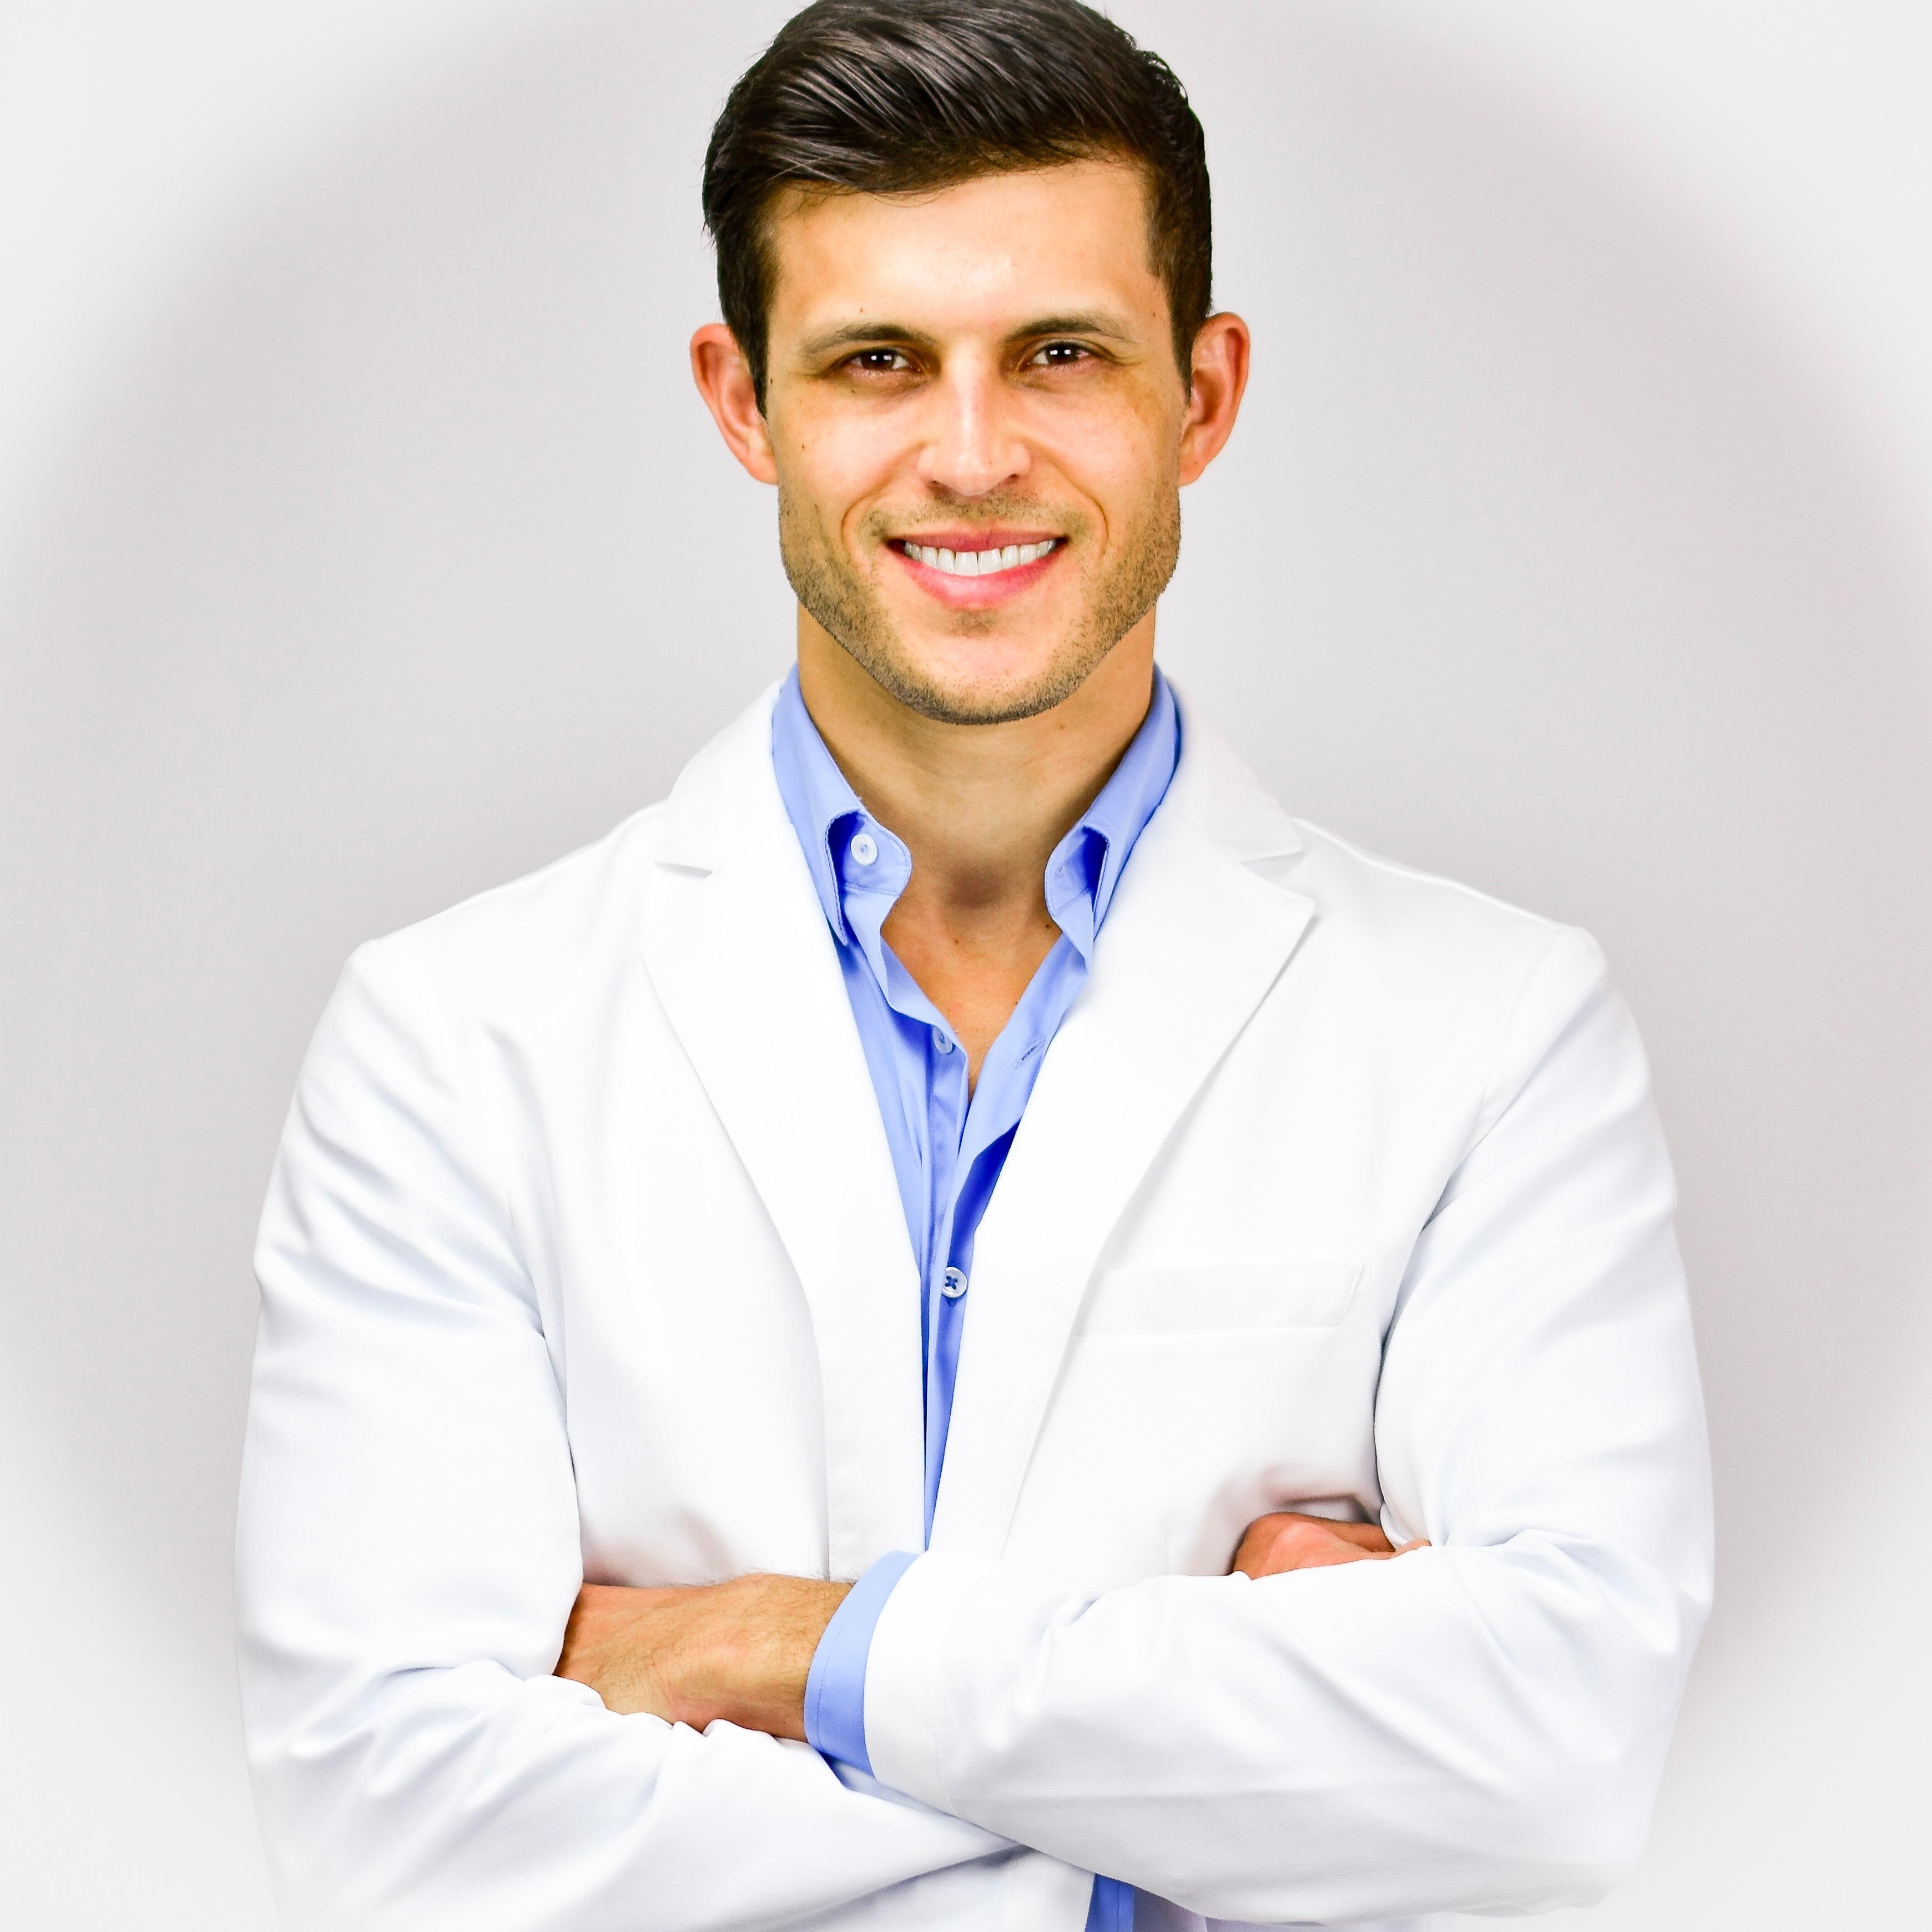 Chris Strandburg, DDS